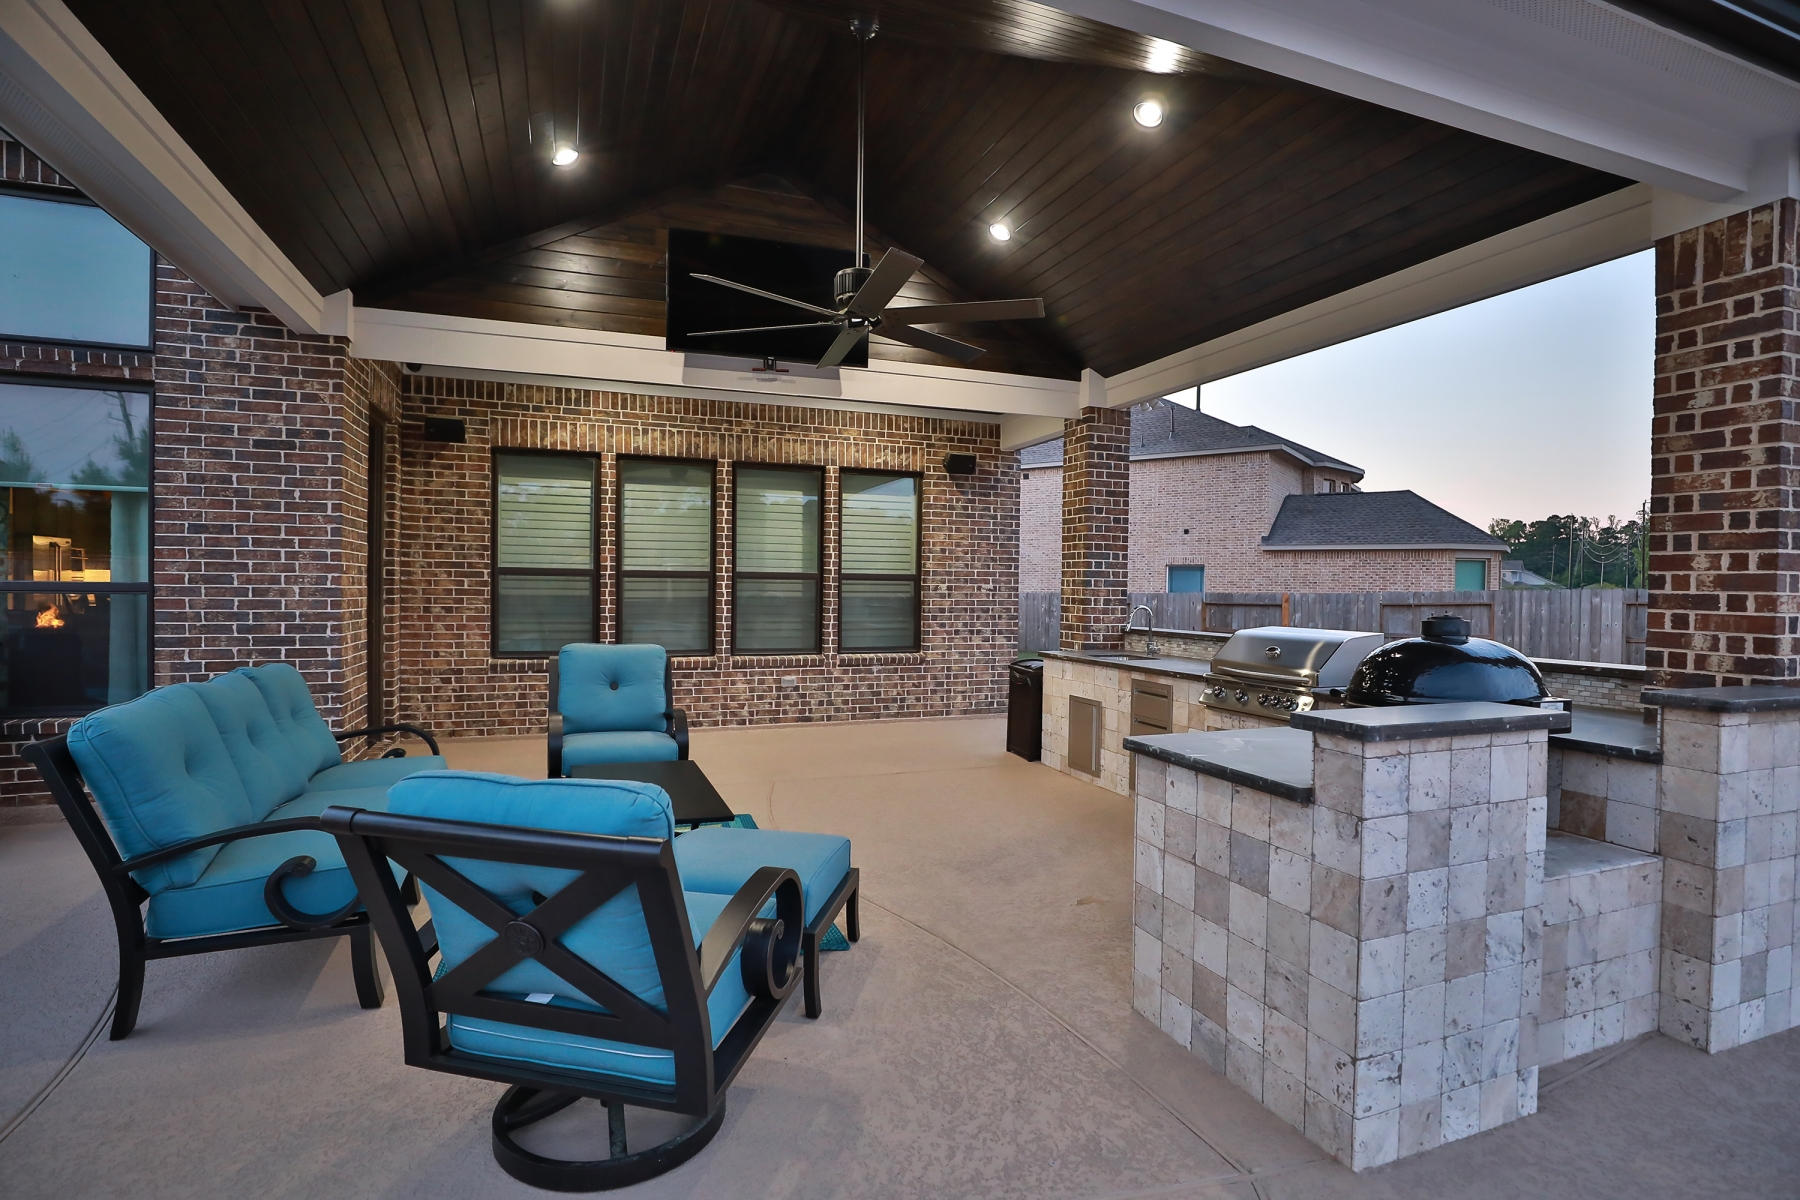 Covered Patio with Outdoor Kitchen and Seating Area